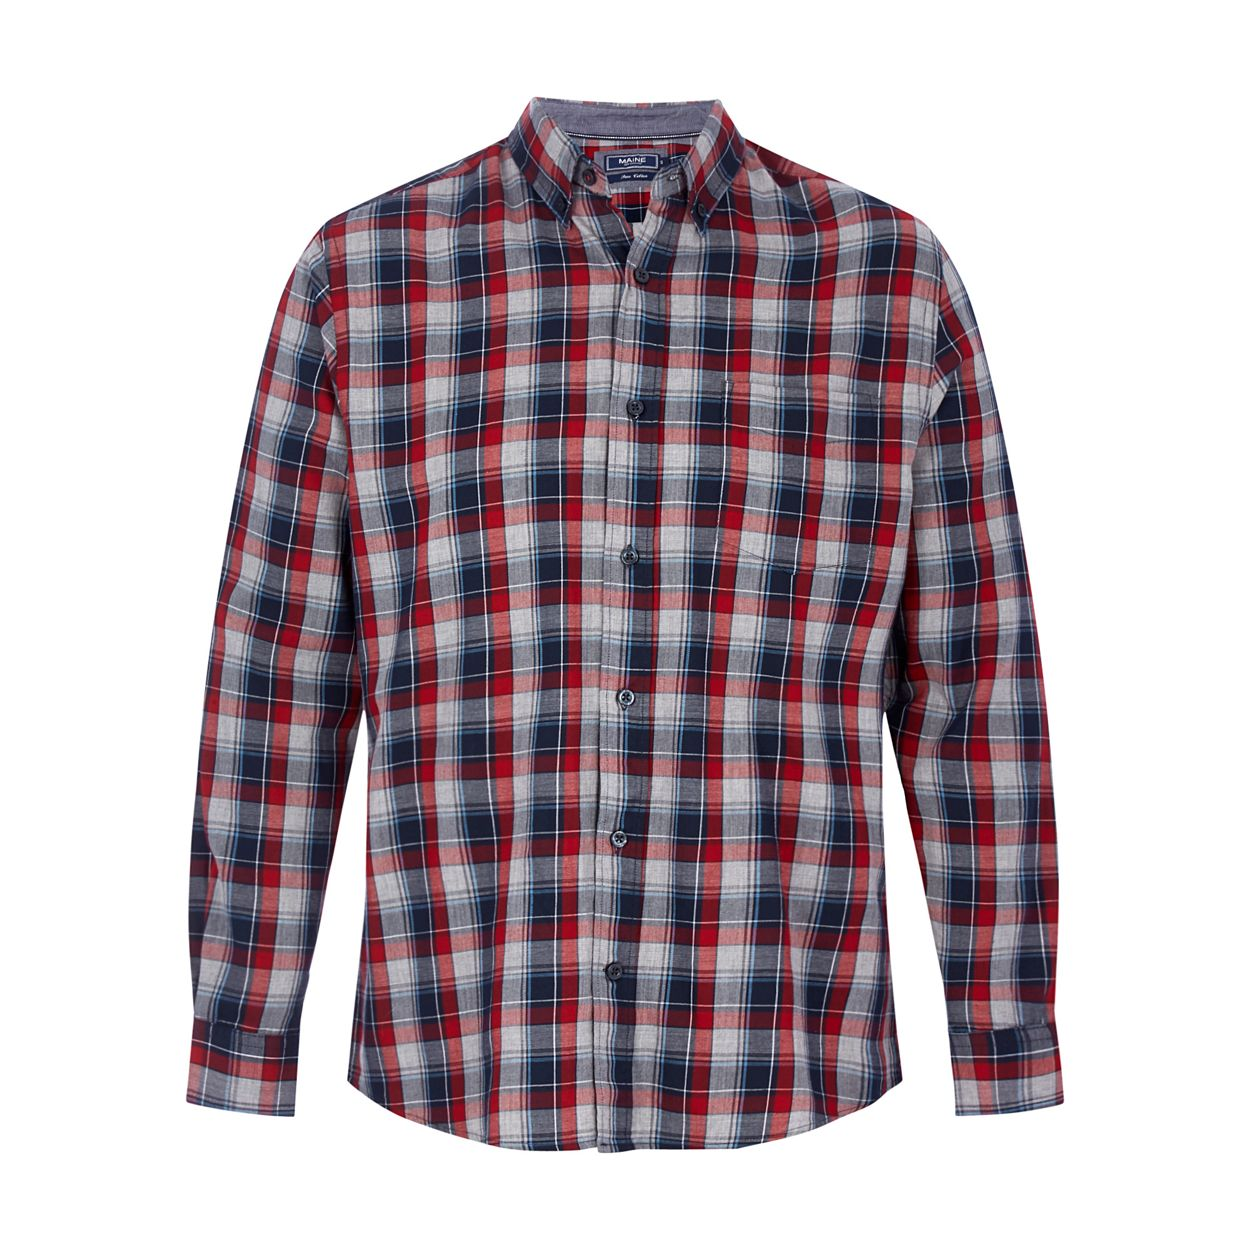 Maine New England Navy Multi-coloured checked shirt